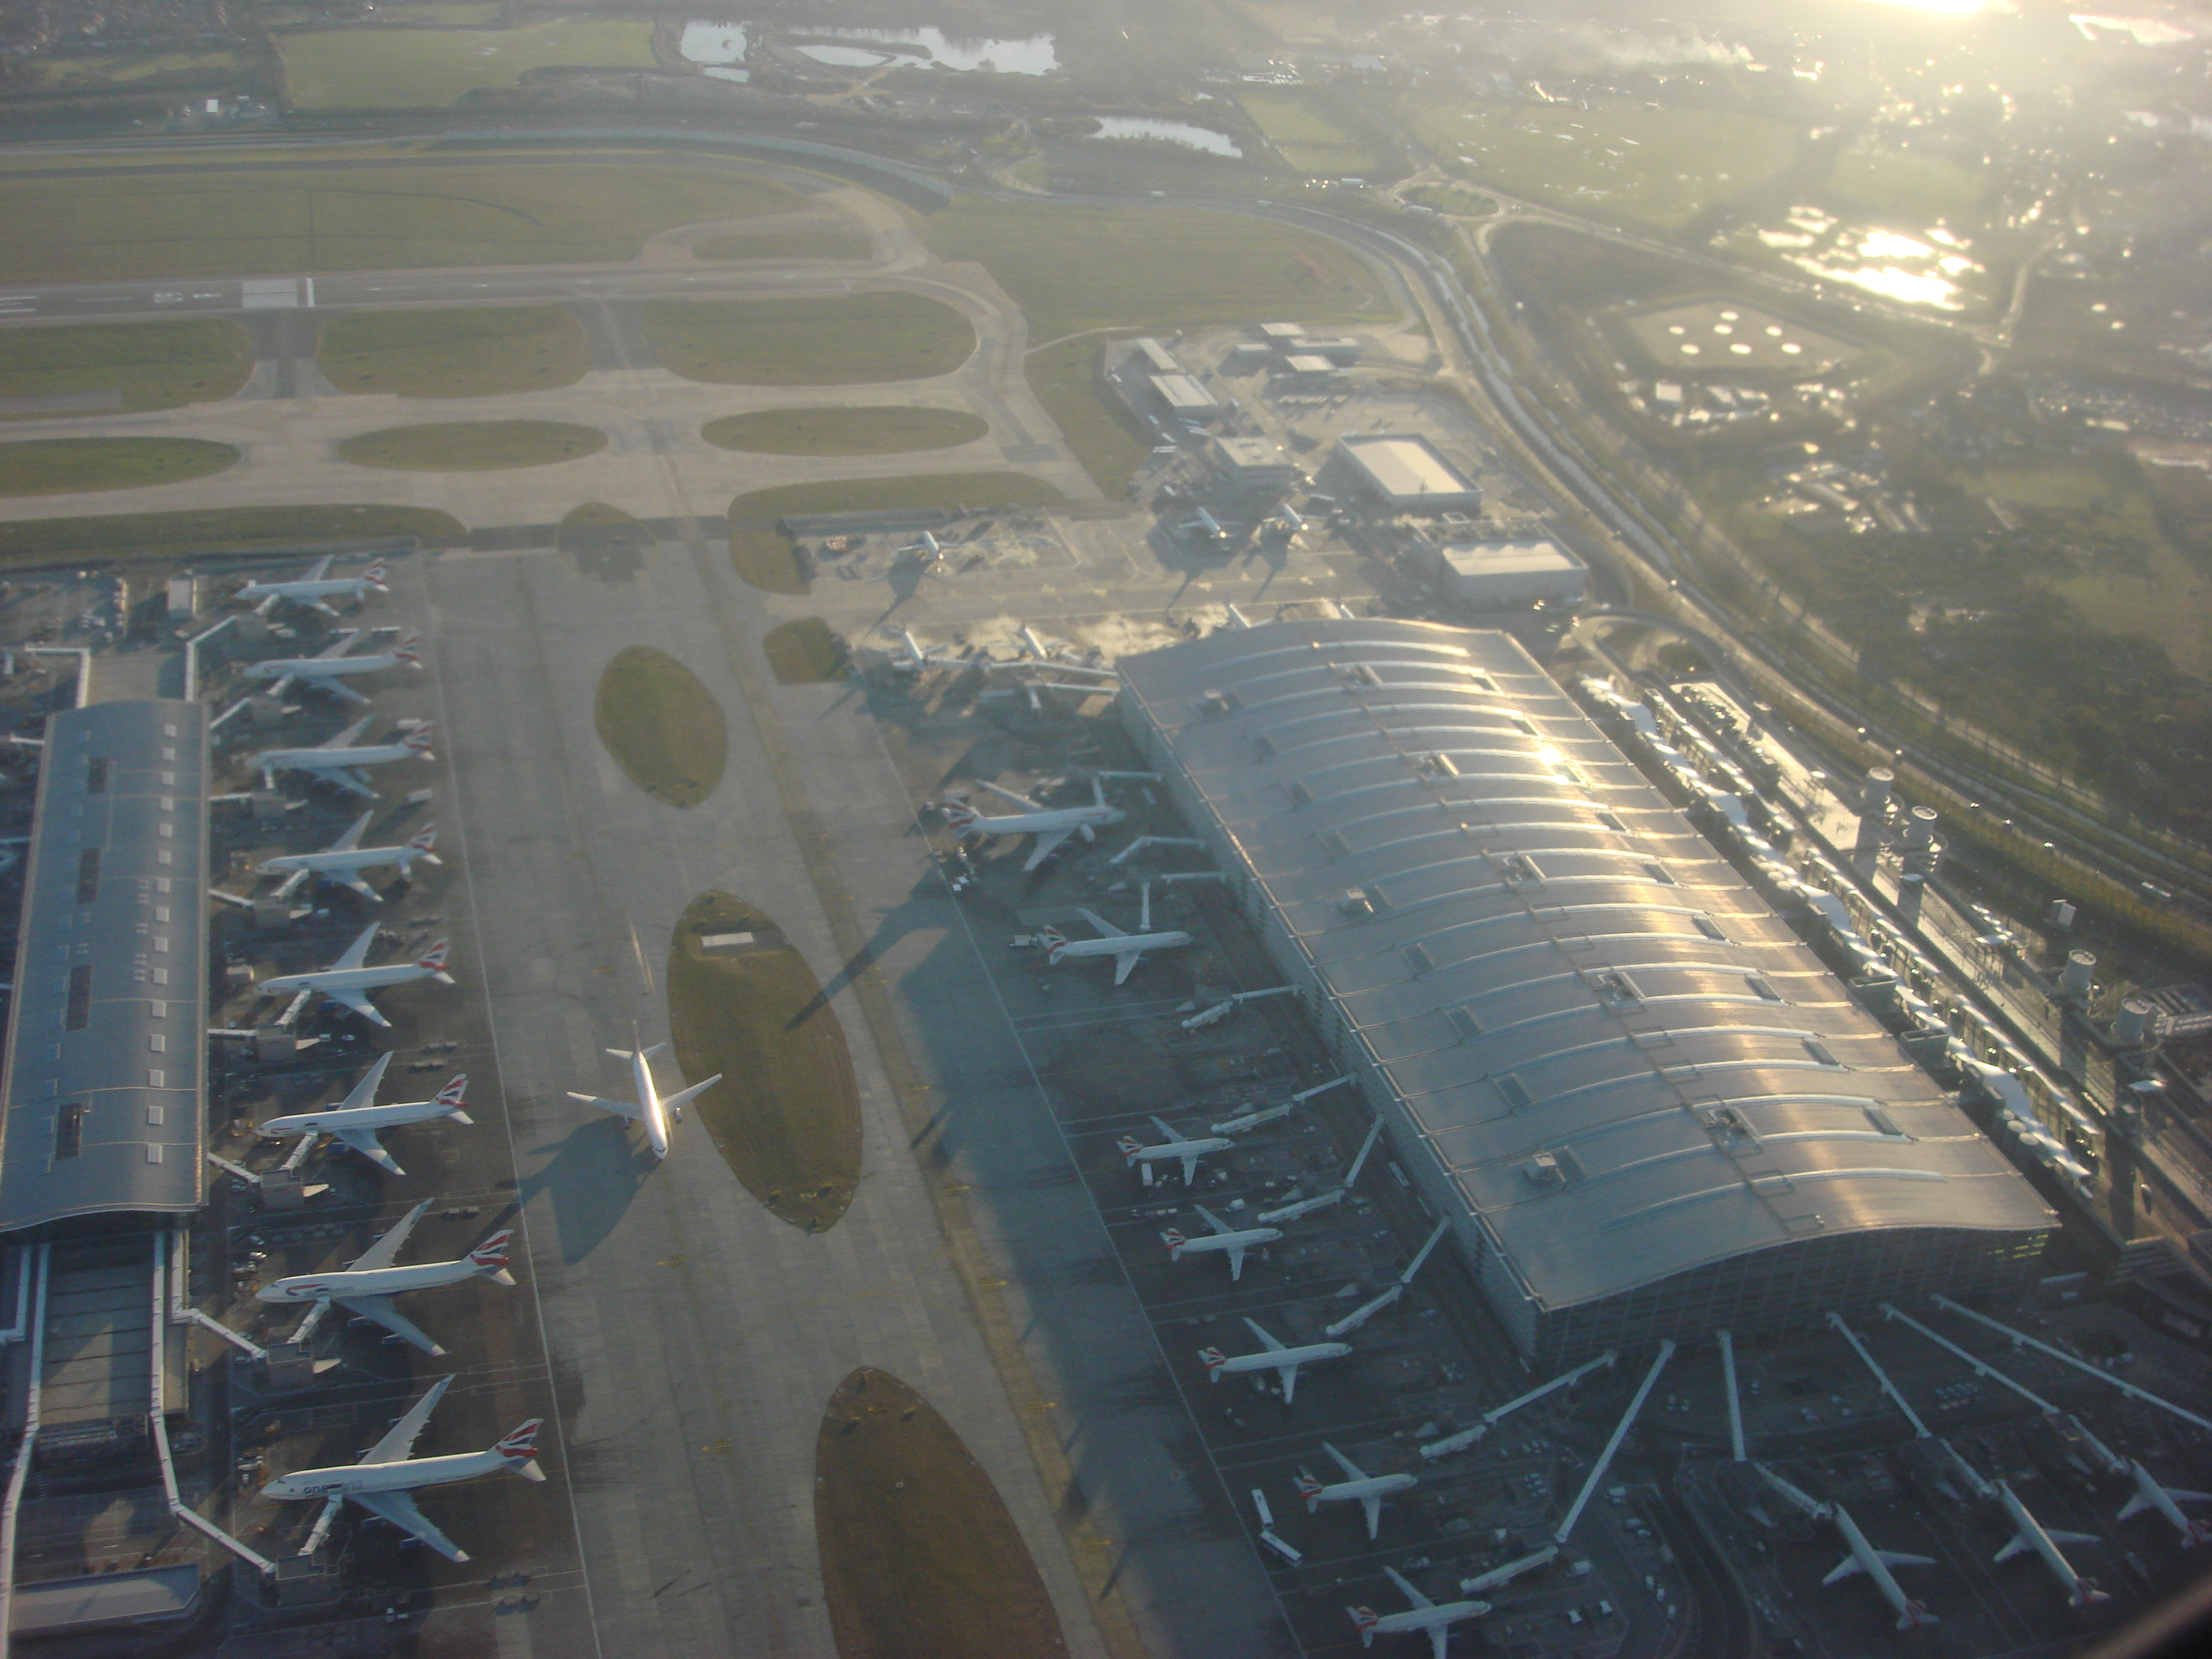 heathrow airport essay Essays - largest database of quality sample essays and research papers on heathrow airport.